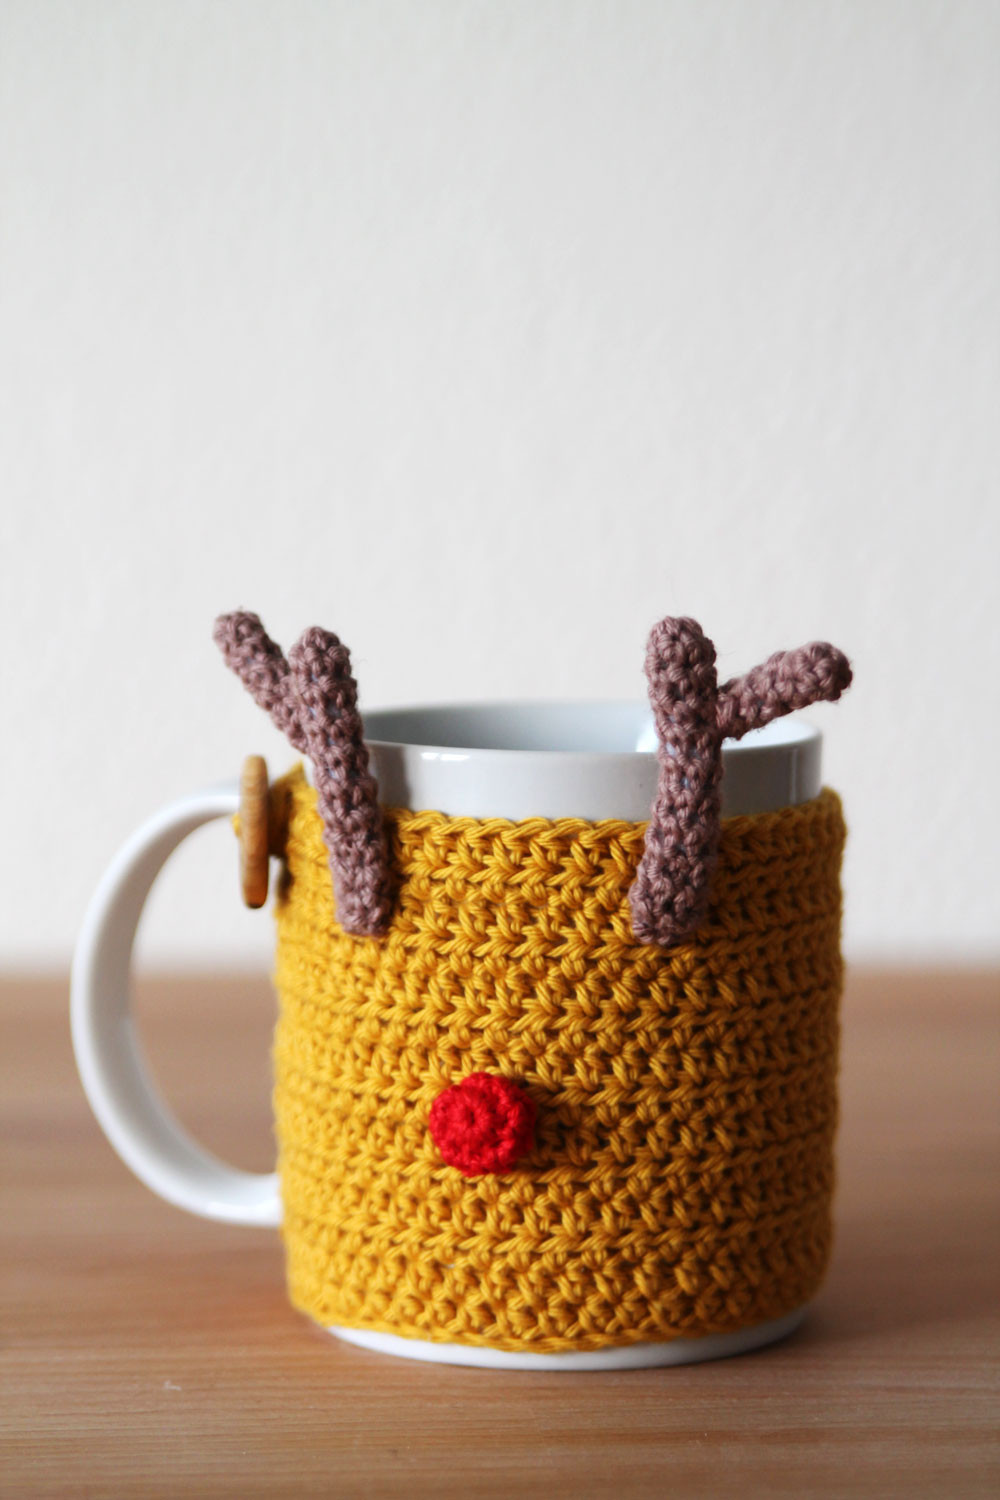 Awesome Free Crochet Pattern for Reindeer Mug Cozy Eng Nl Crochet Cup Cozies Of Wonderful 42 Pics Crochet Cup Cozies